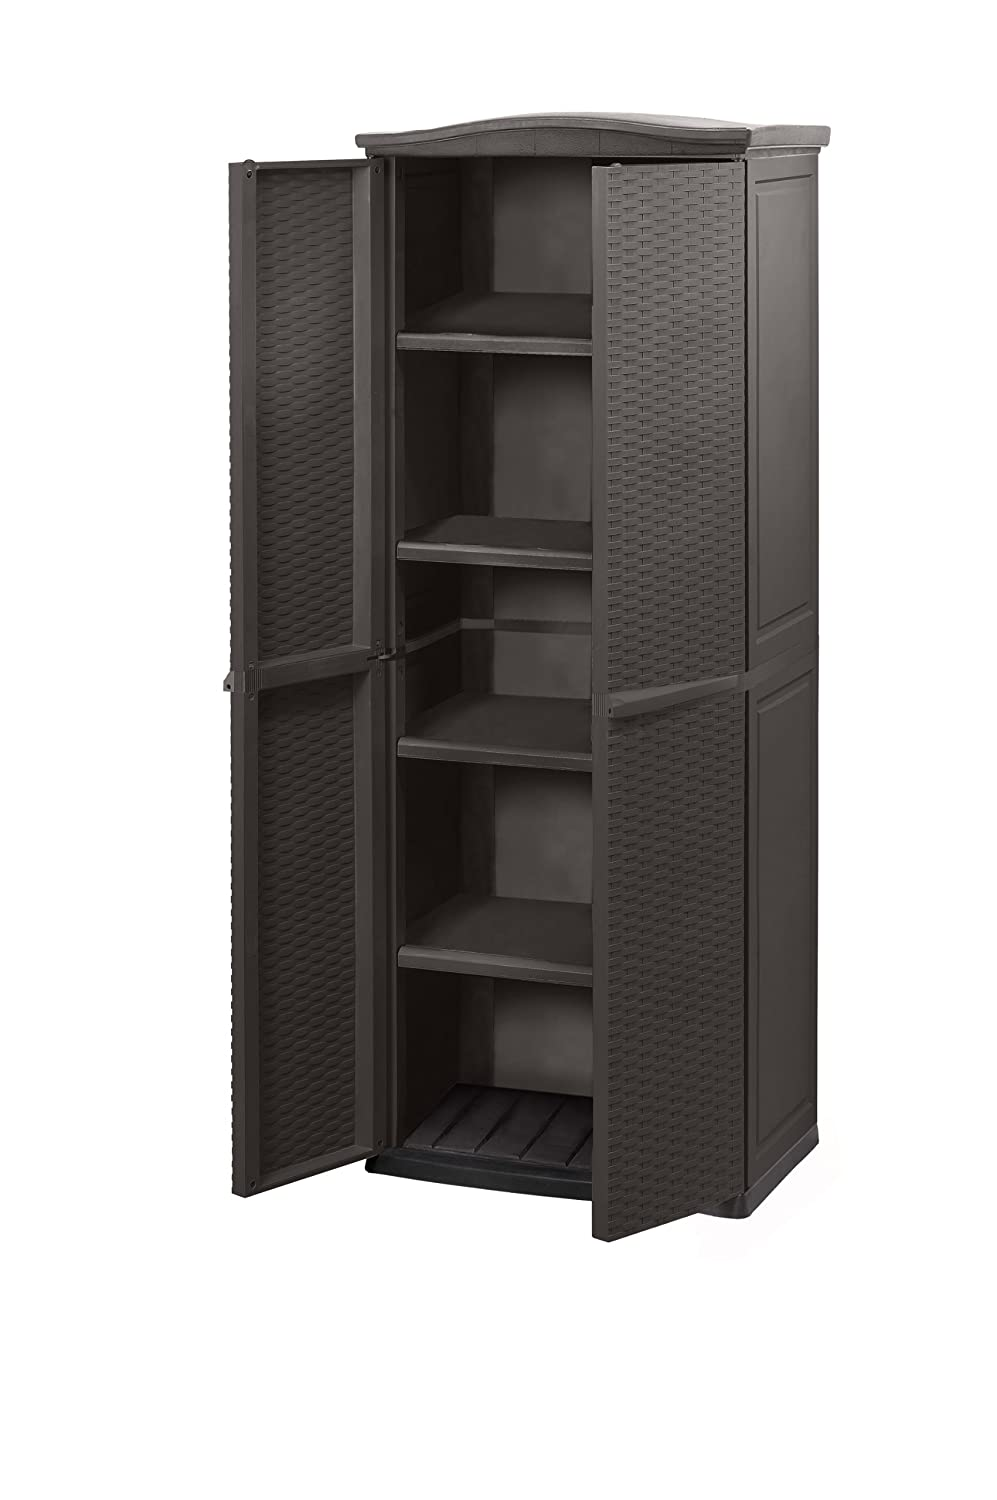 Keter 17190092 Universalschrank Rattan Style Utility Shed ...